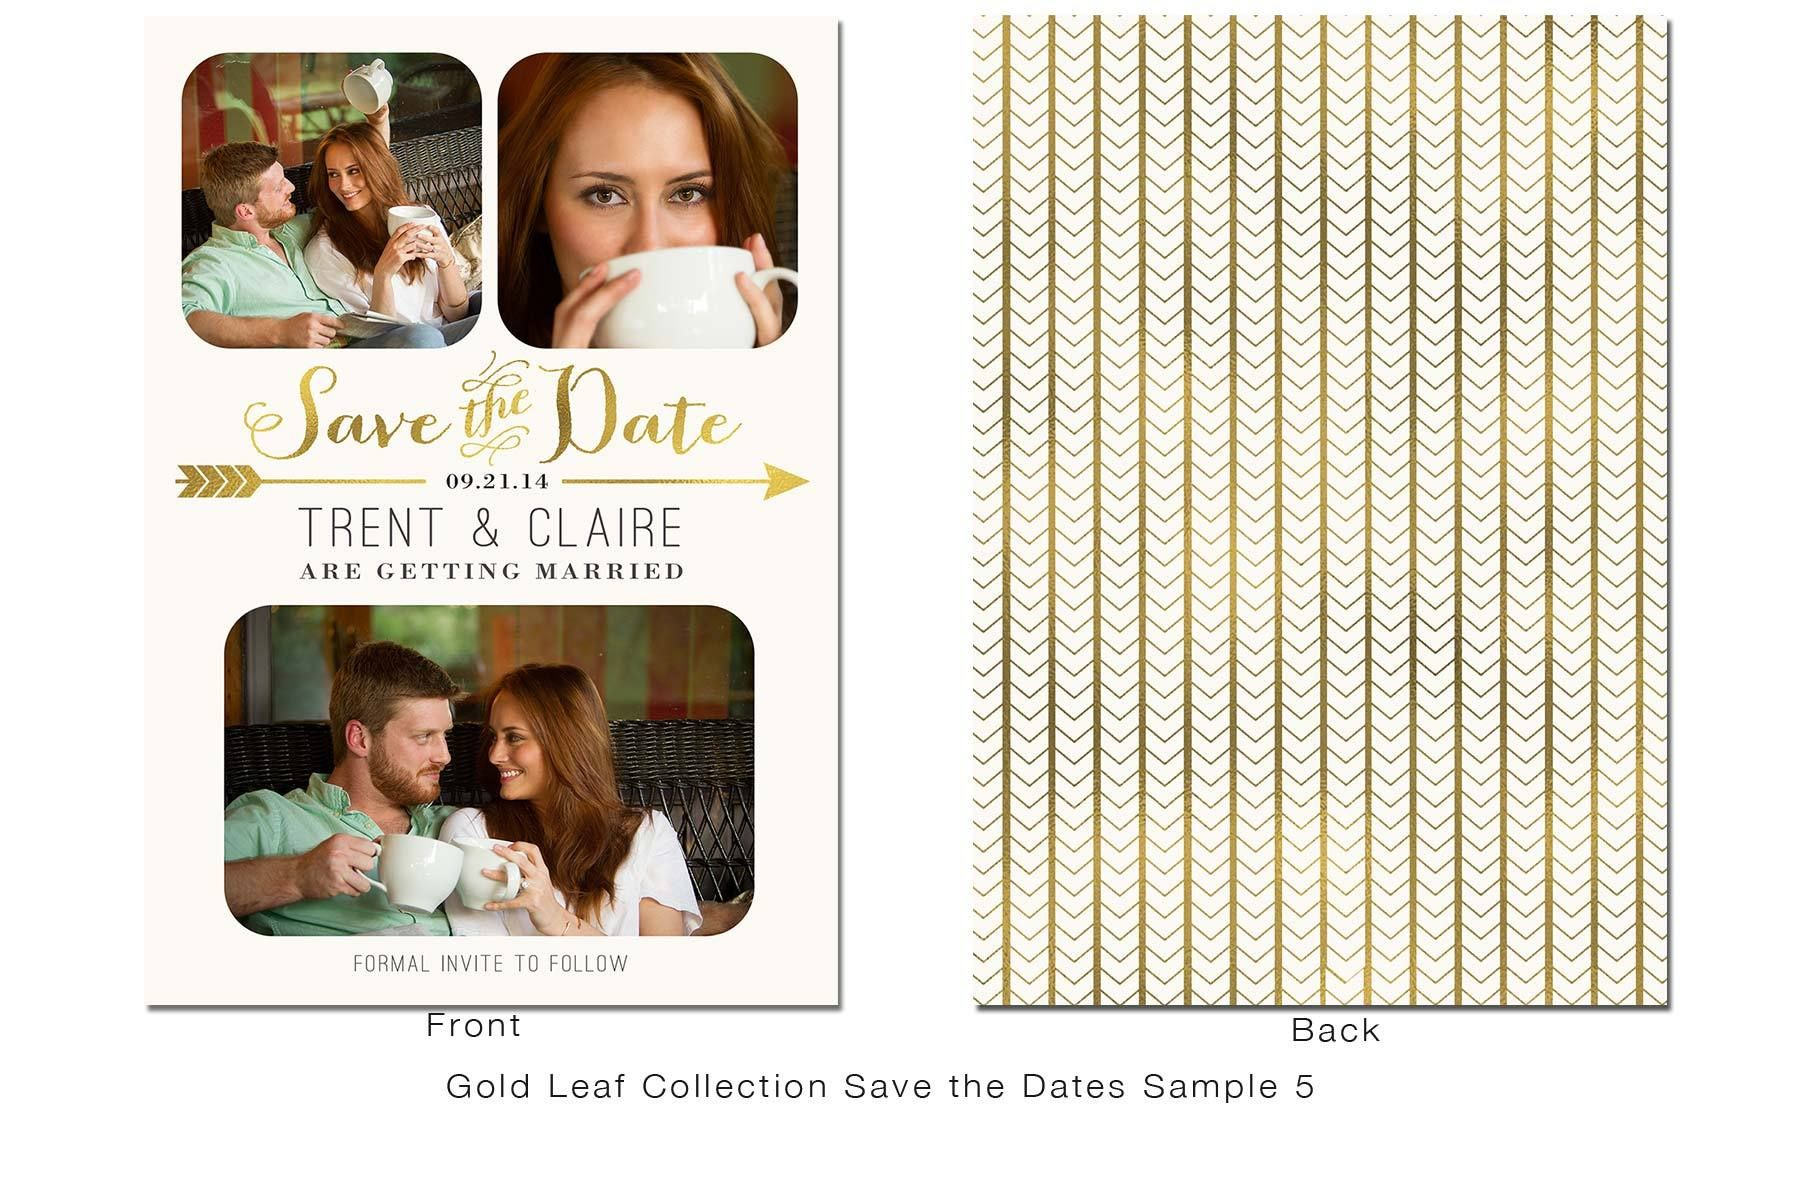 1gold_leaf_save_the_dates_sample_5.jpg